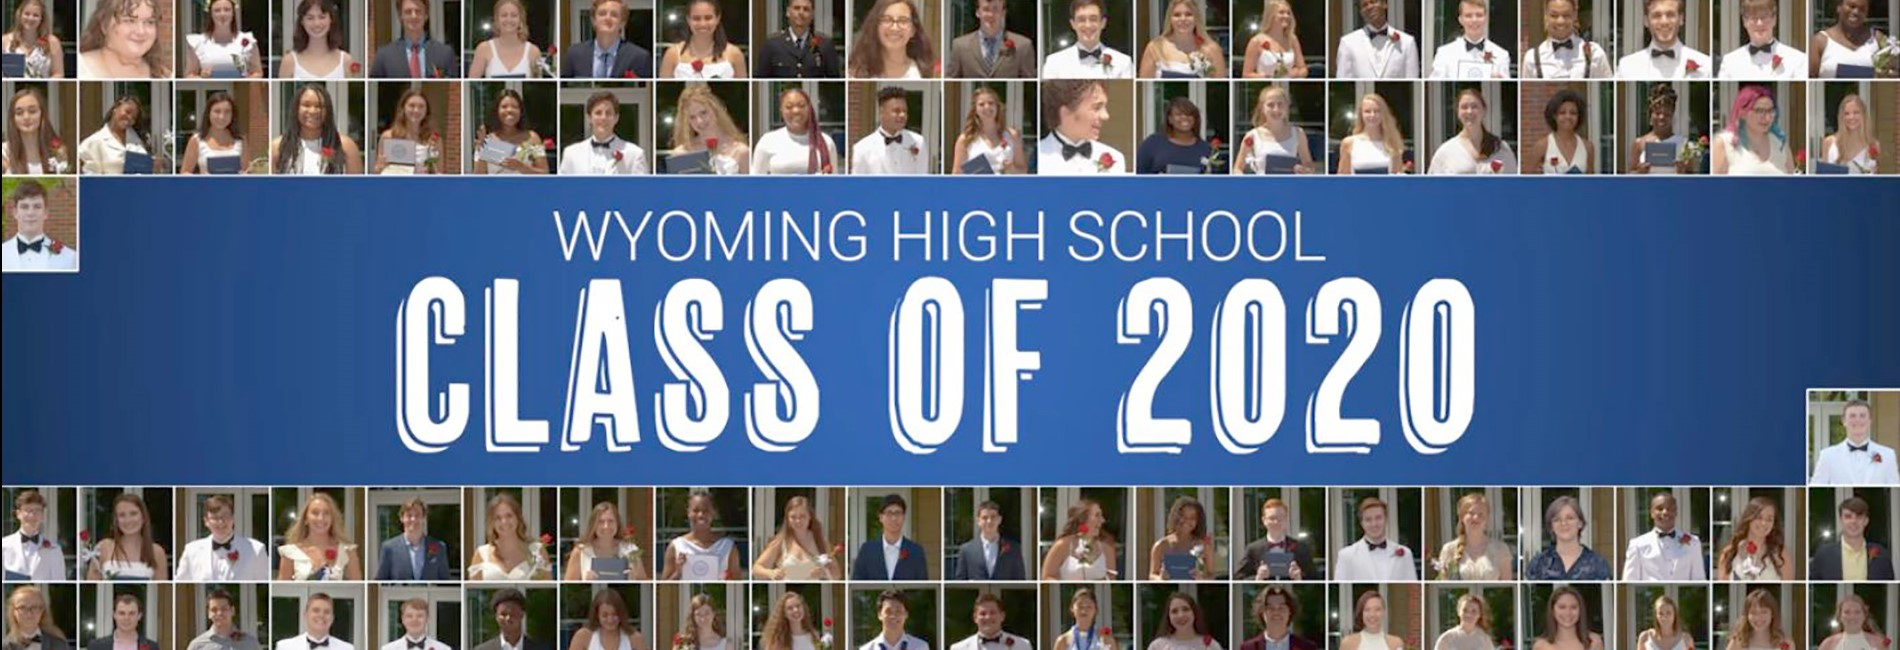 Photos of the Class of 2020